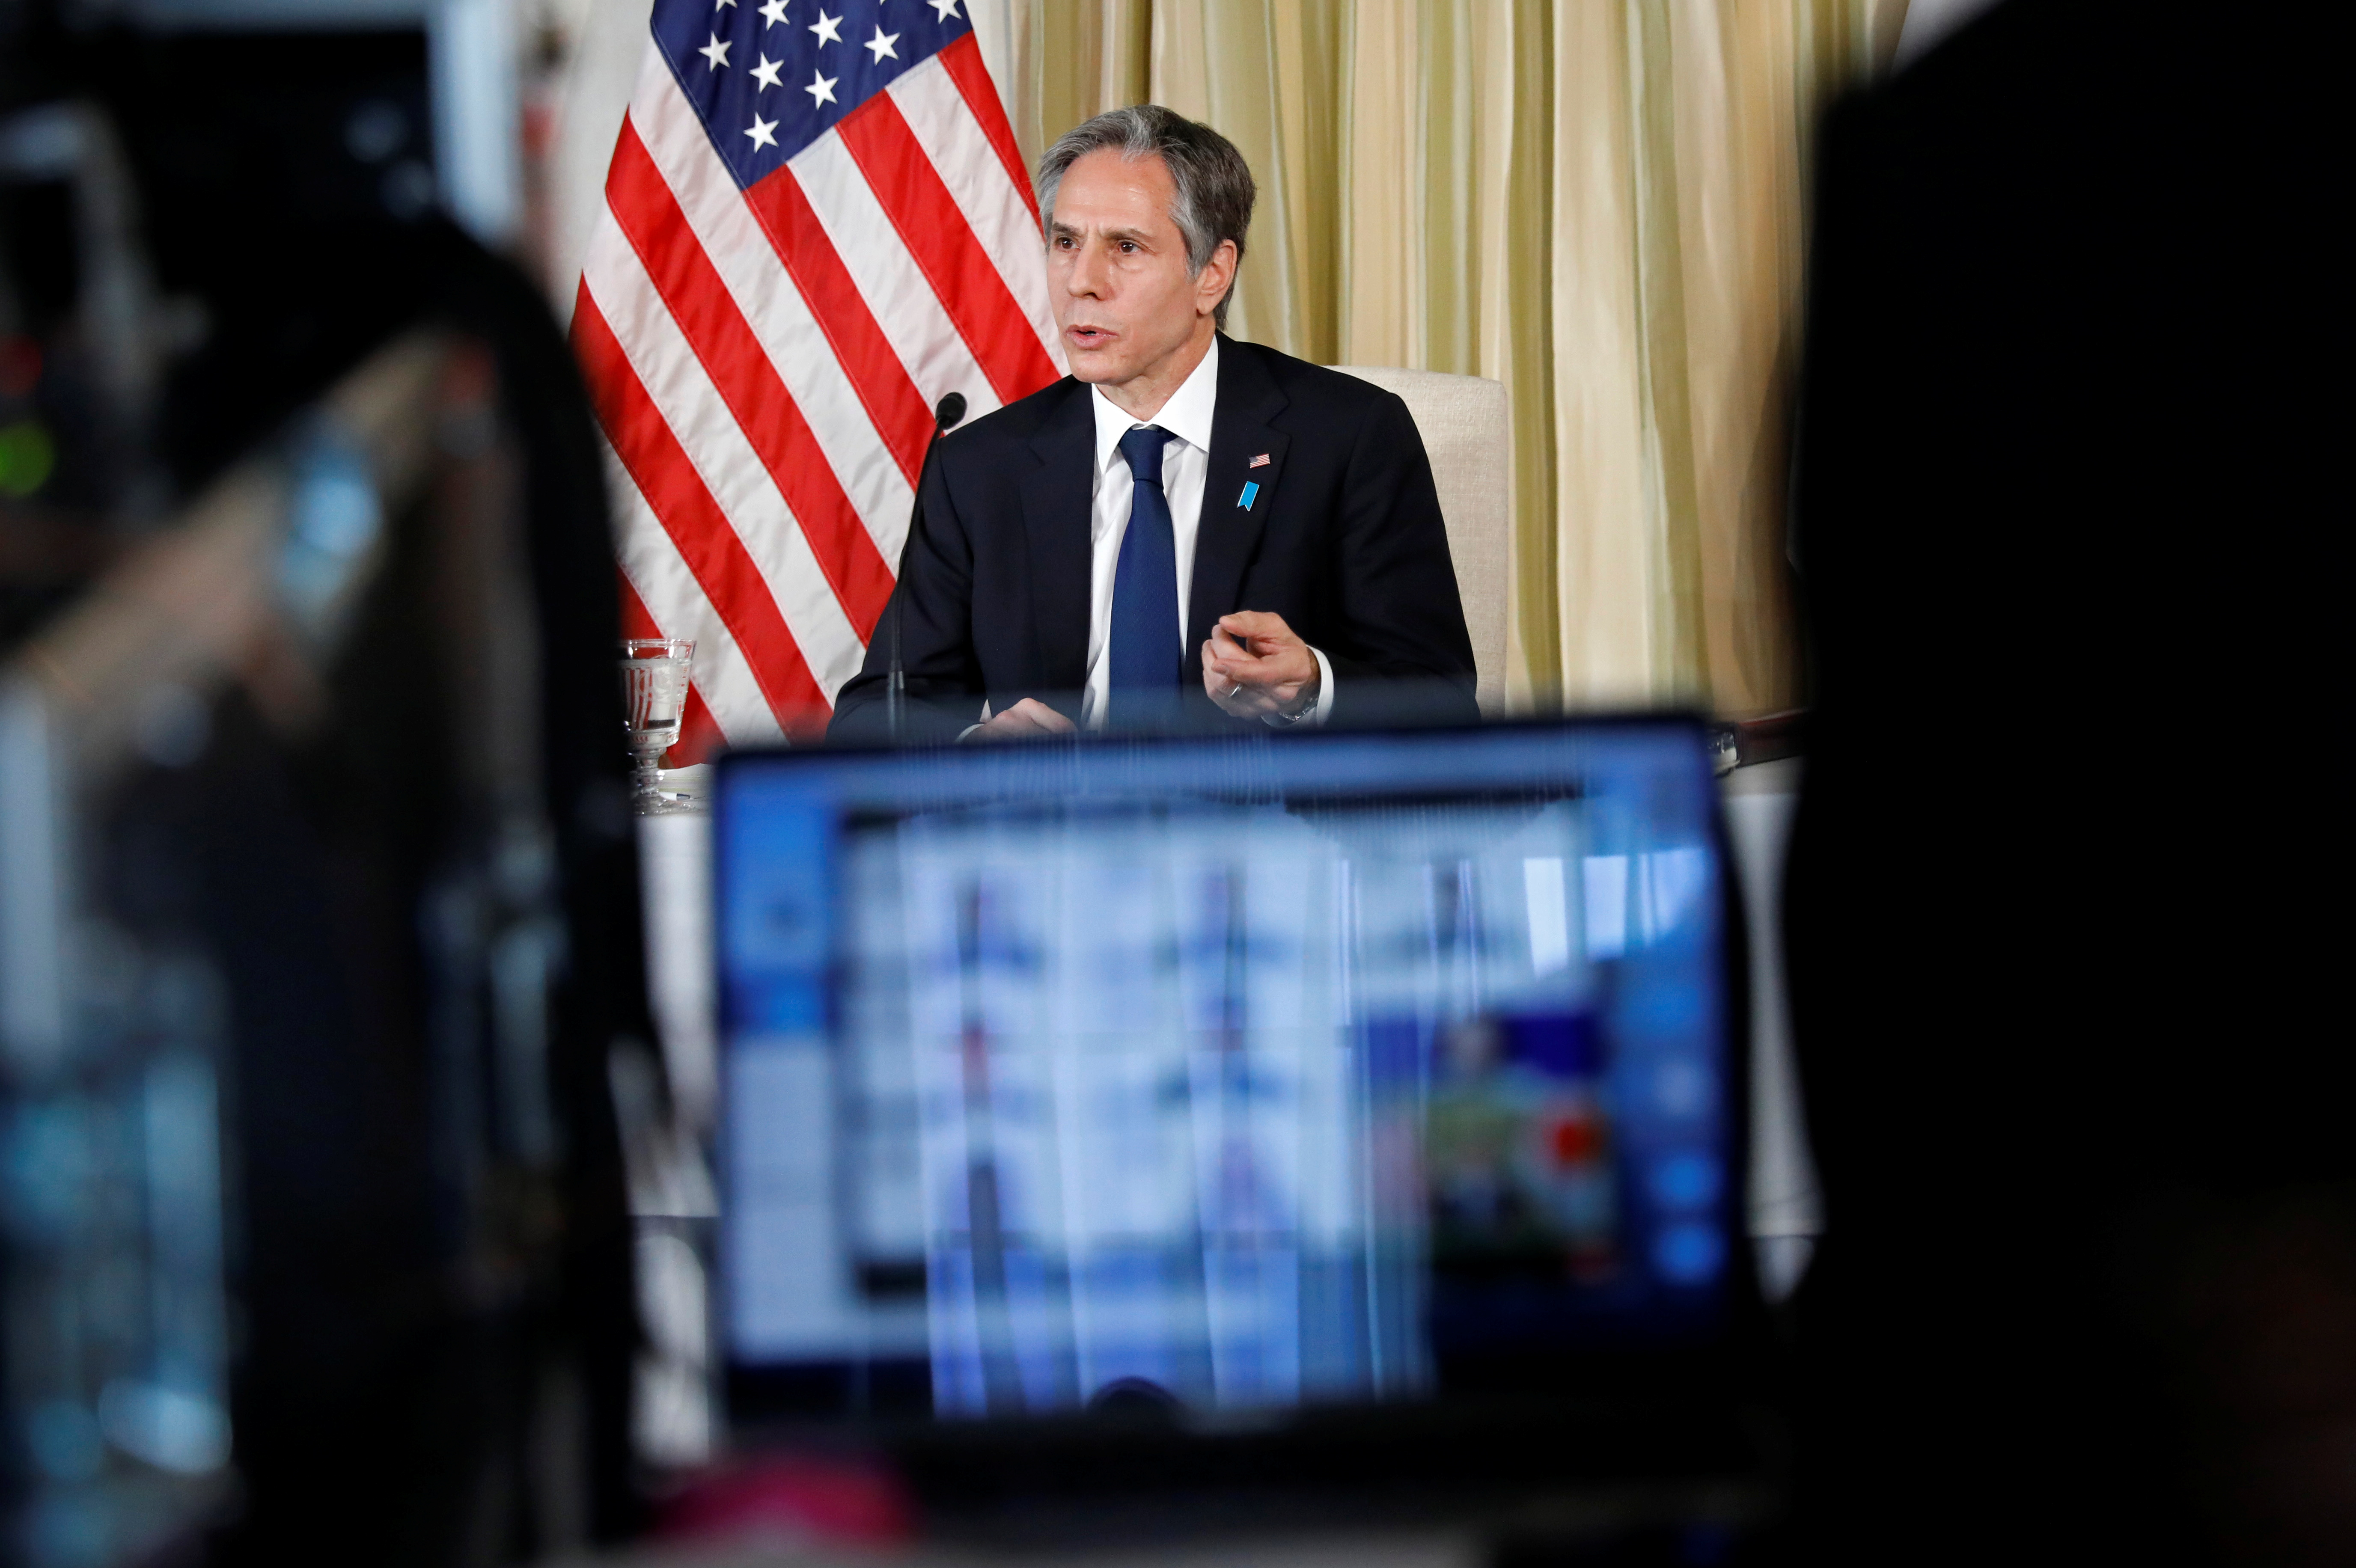 U.S. Secretary of State Antony Blinken attends a virtual meet and greet with U.S. Embassy staff at the U.S. Ambassador's residence in Tokyo, Japan, March 16, 2021. REUTERS/Kim Kyung-Hoon/Pool